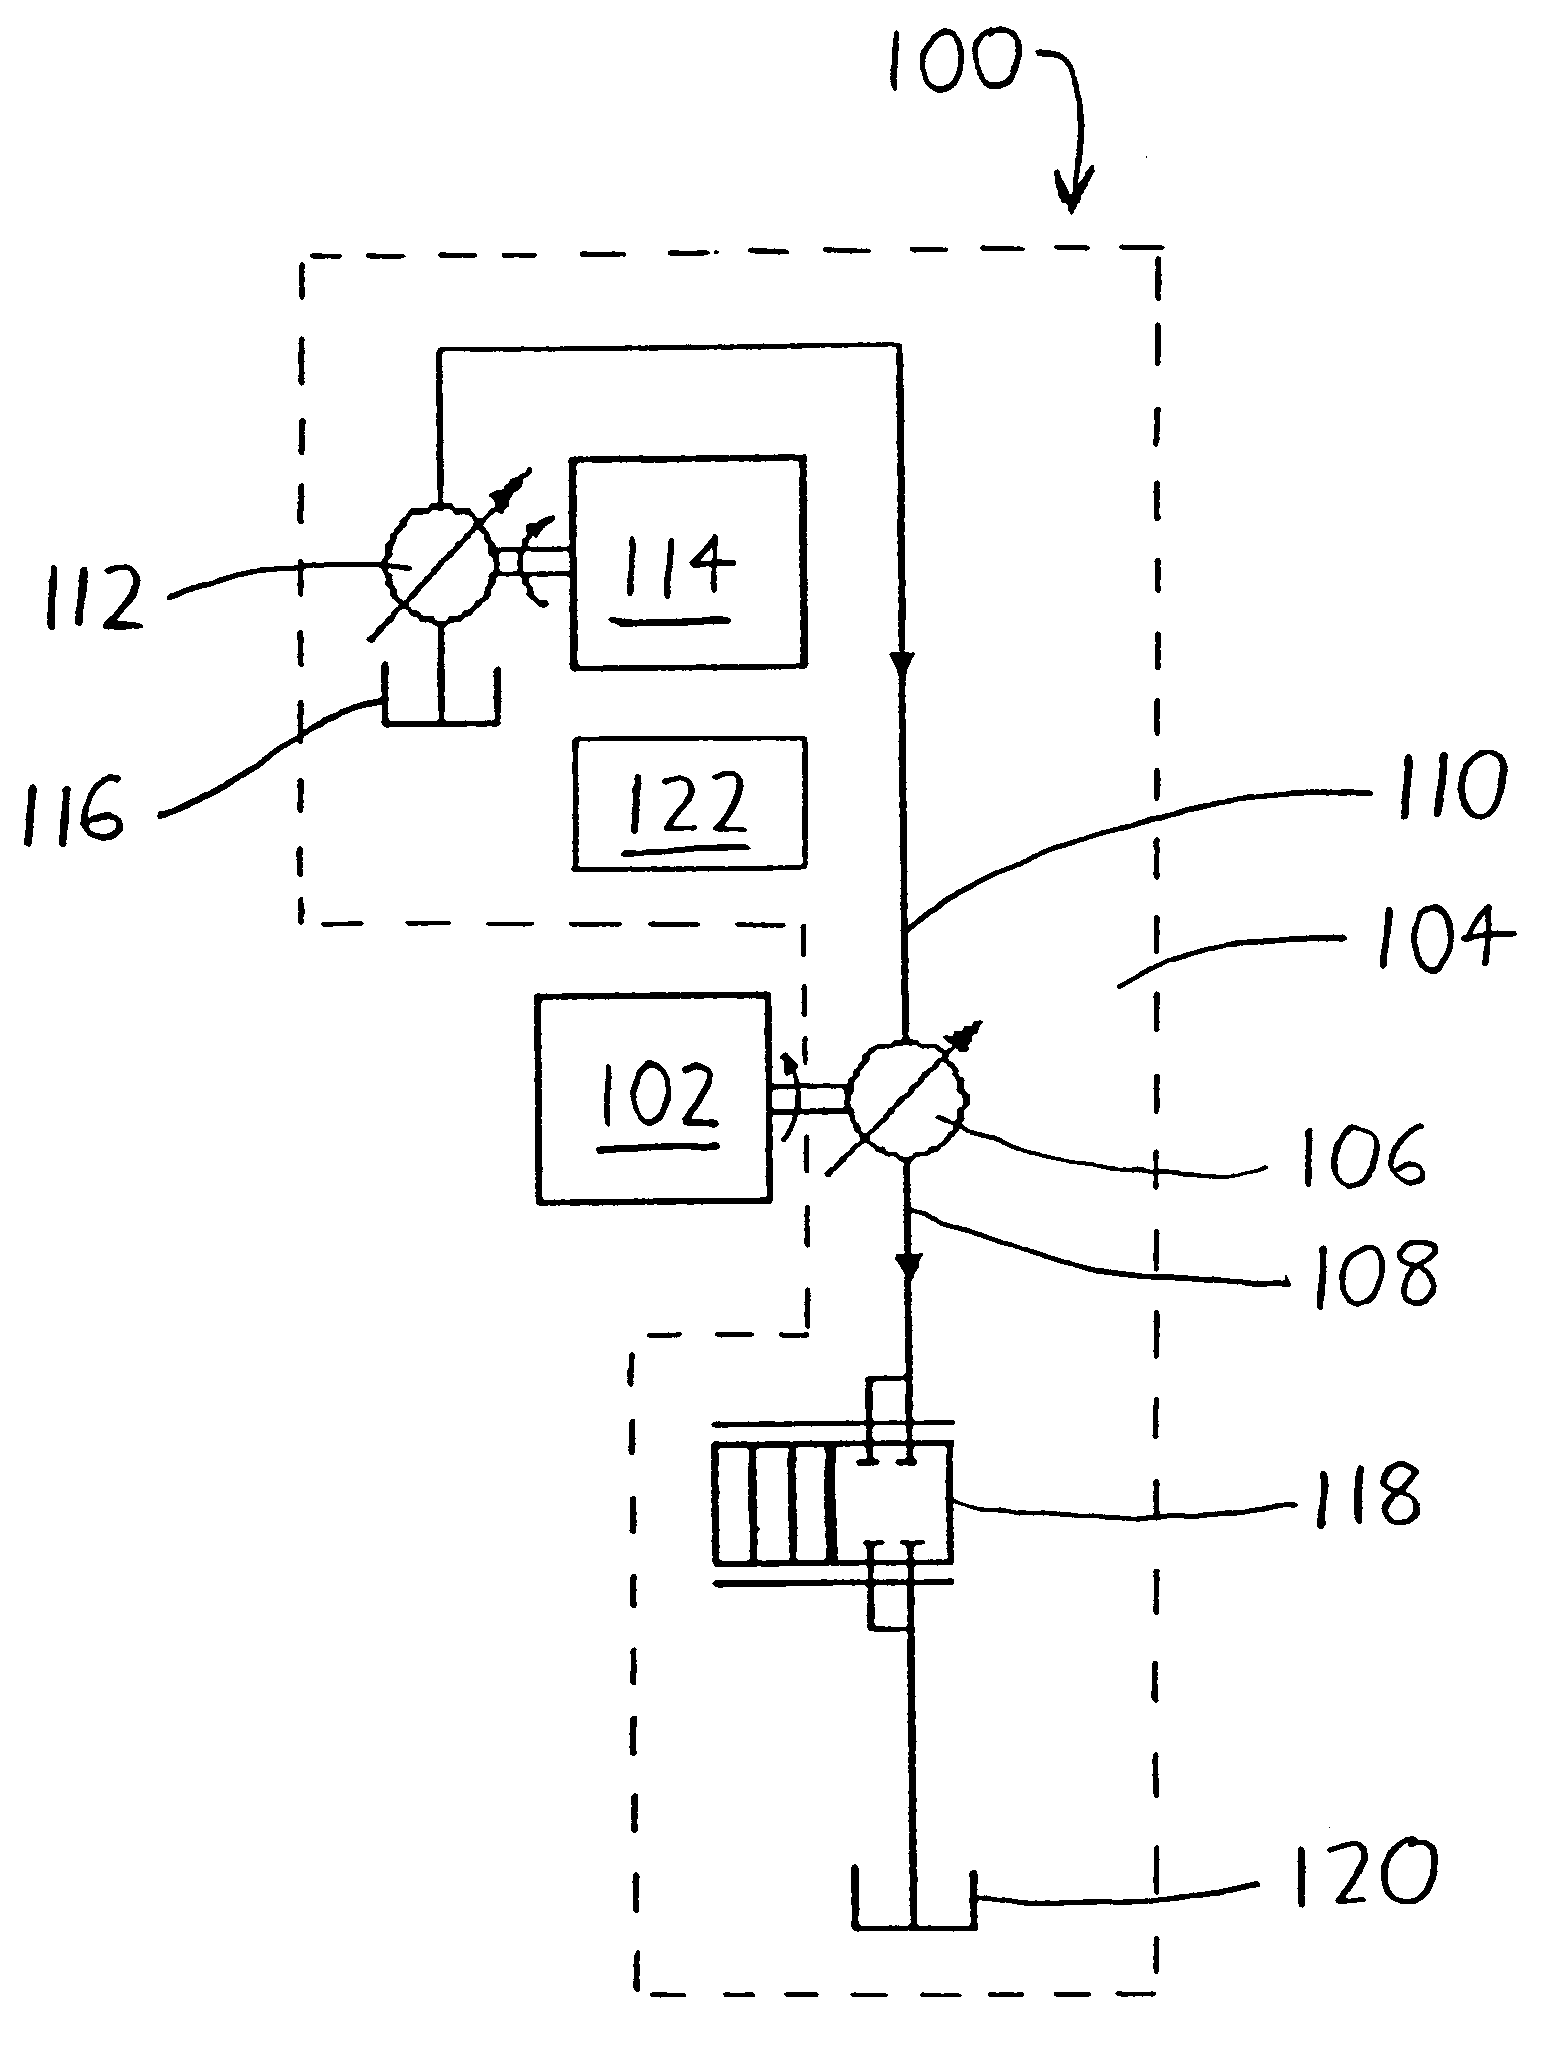 brevet us6708557 internal bustion engine simulation and testing First Combustion Engine patent drawing